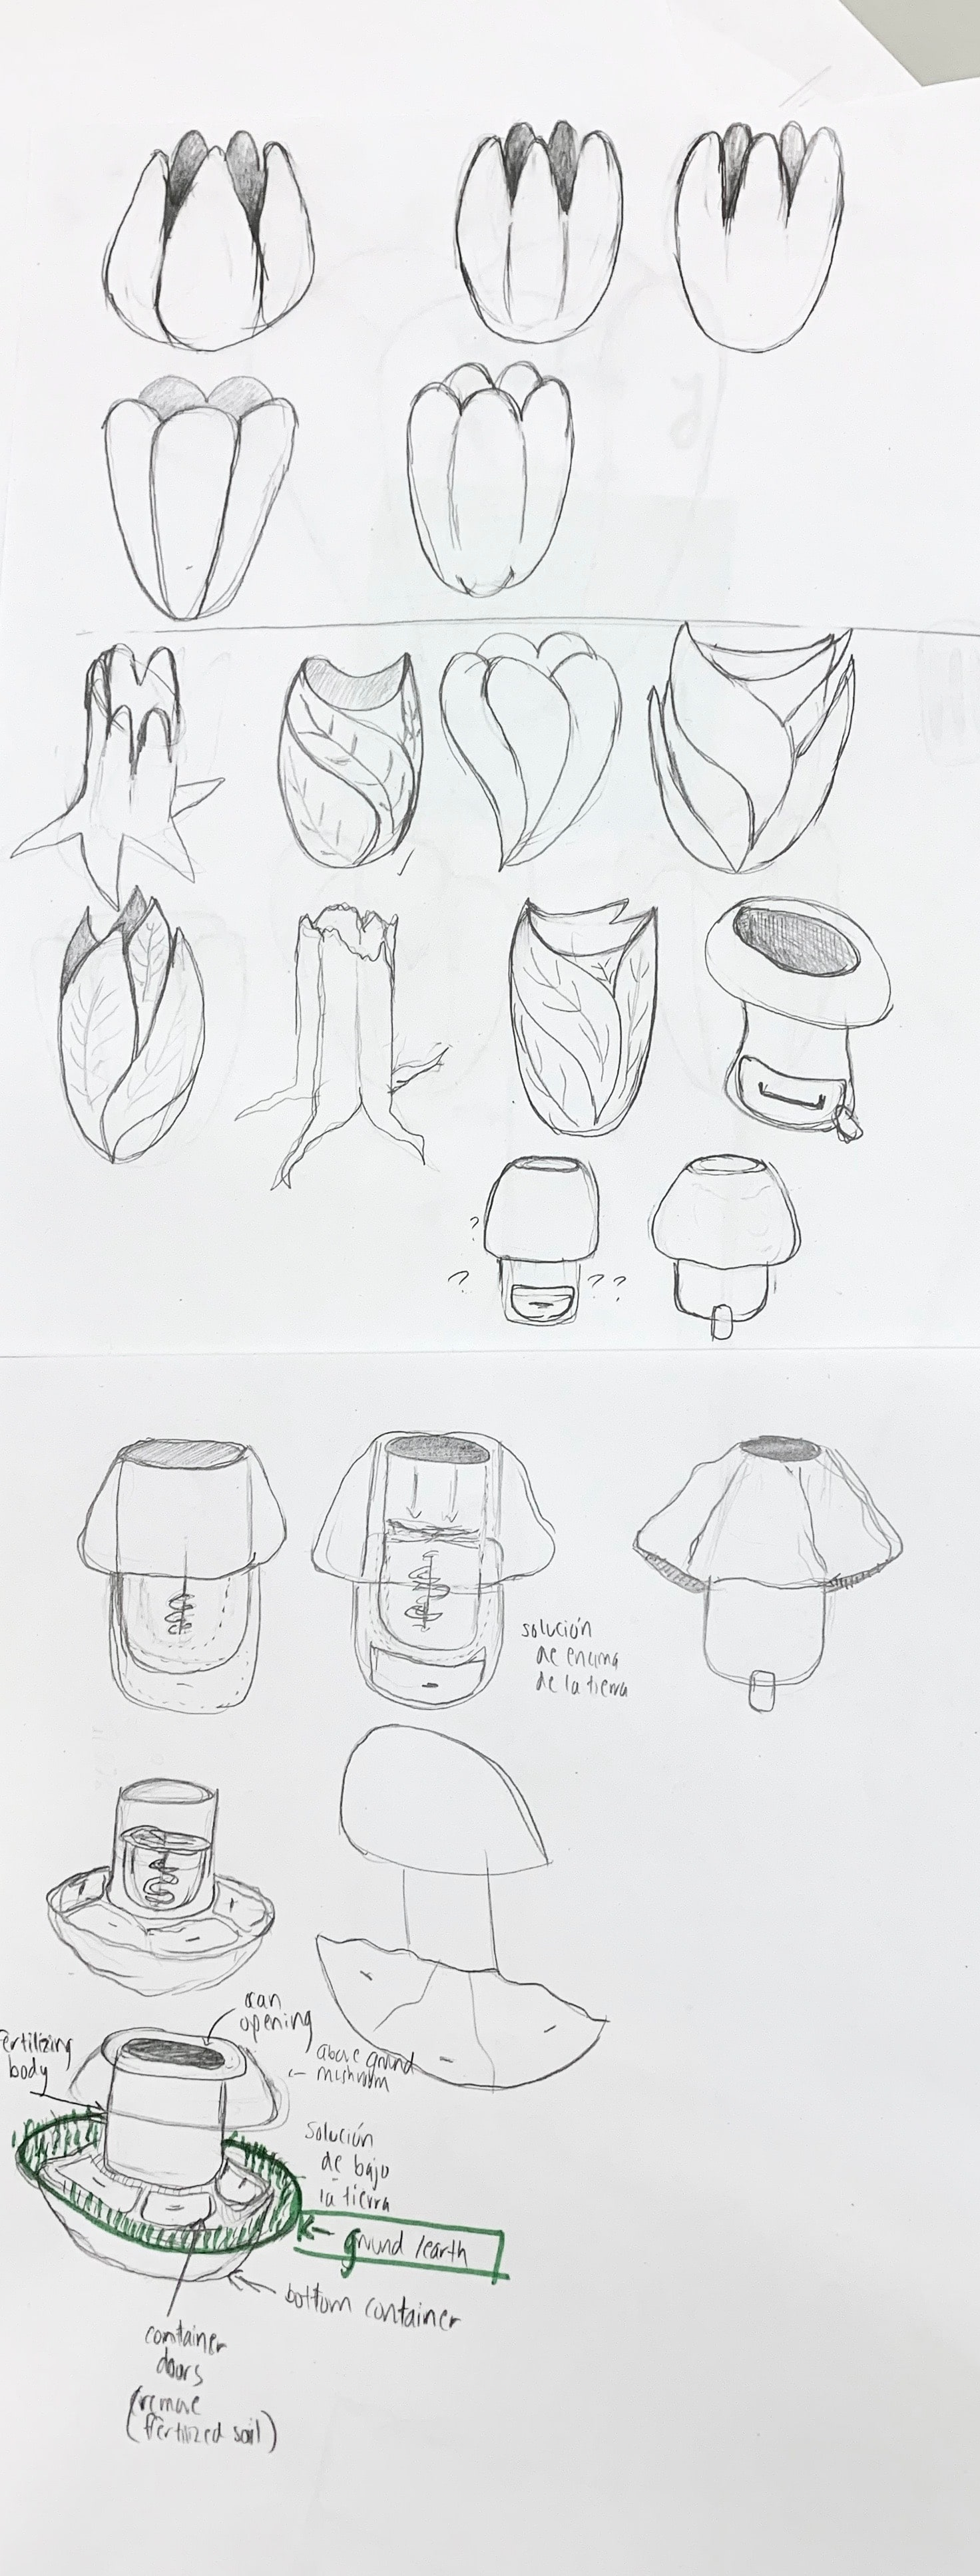 Long form sketch of a beautified trash or disposal can, that was then extended to be designed for the purpose of composting